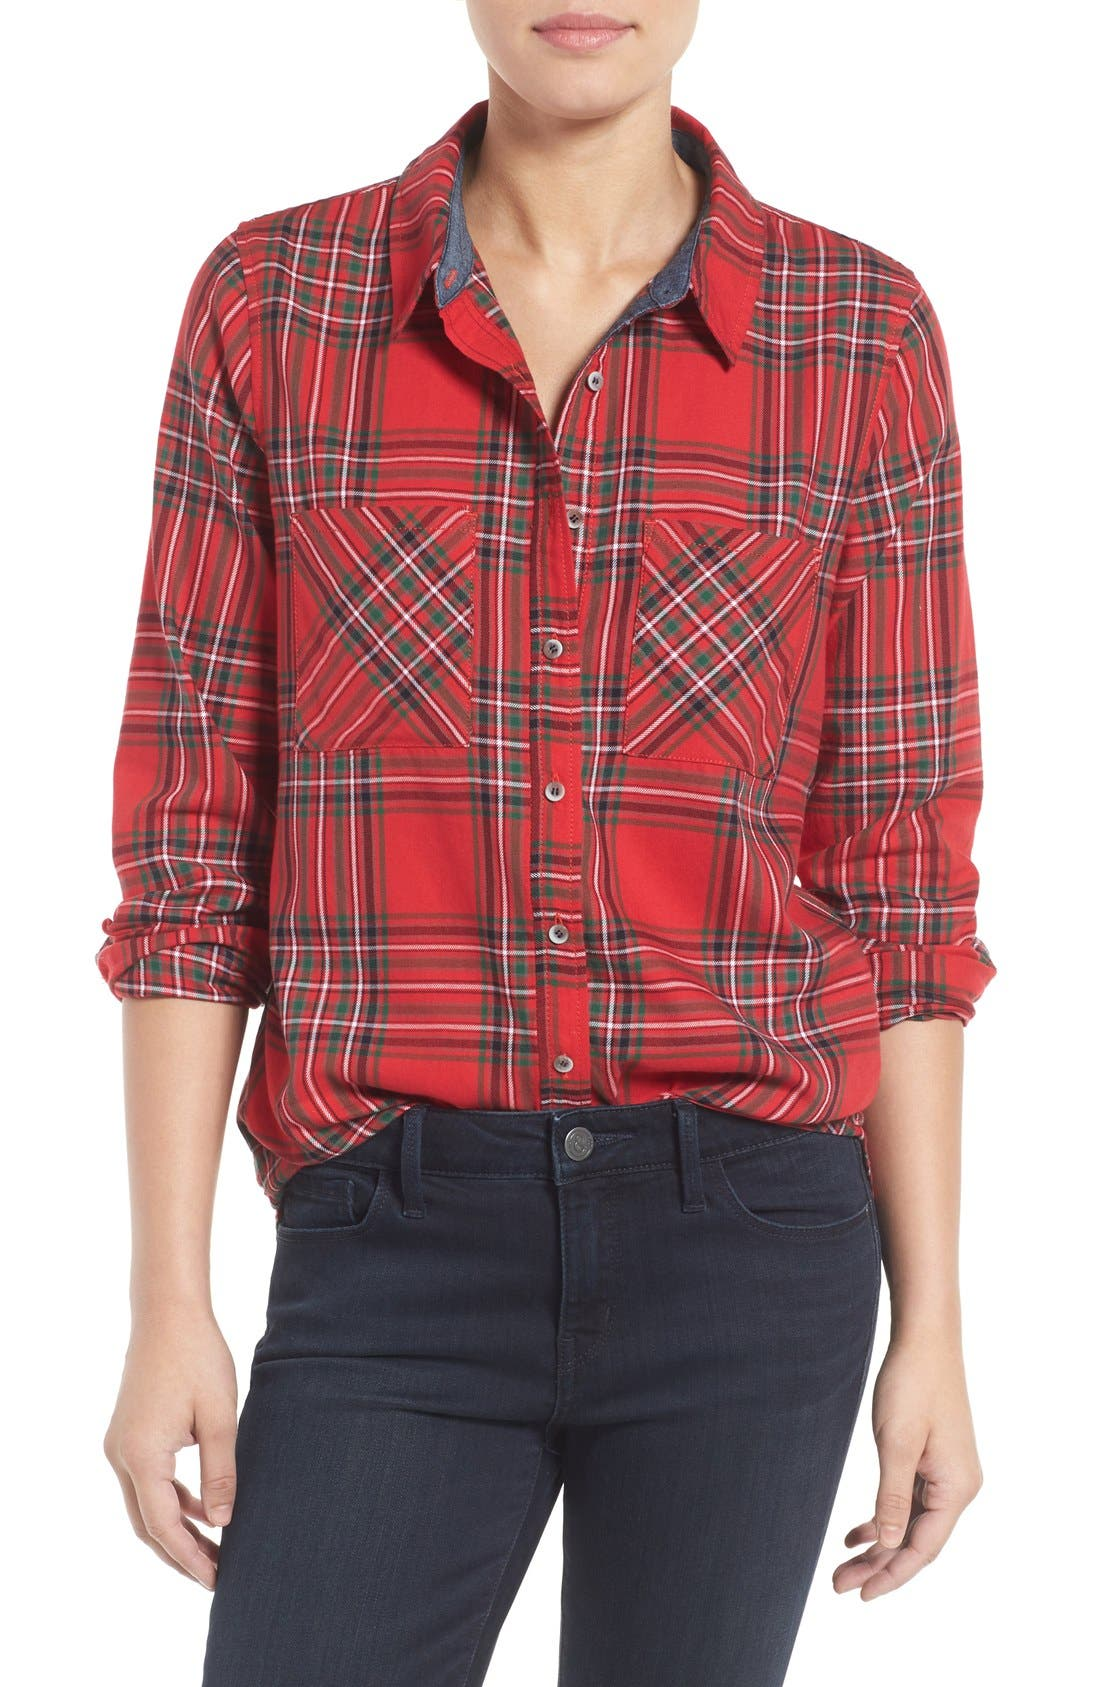 Main Image - Treasure&Bond Plaid Shirt